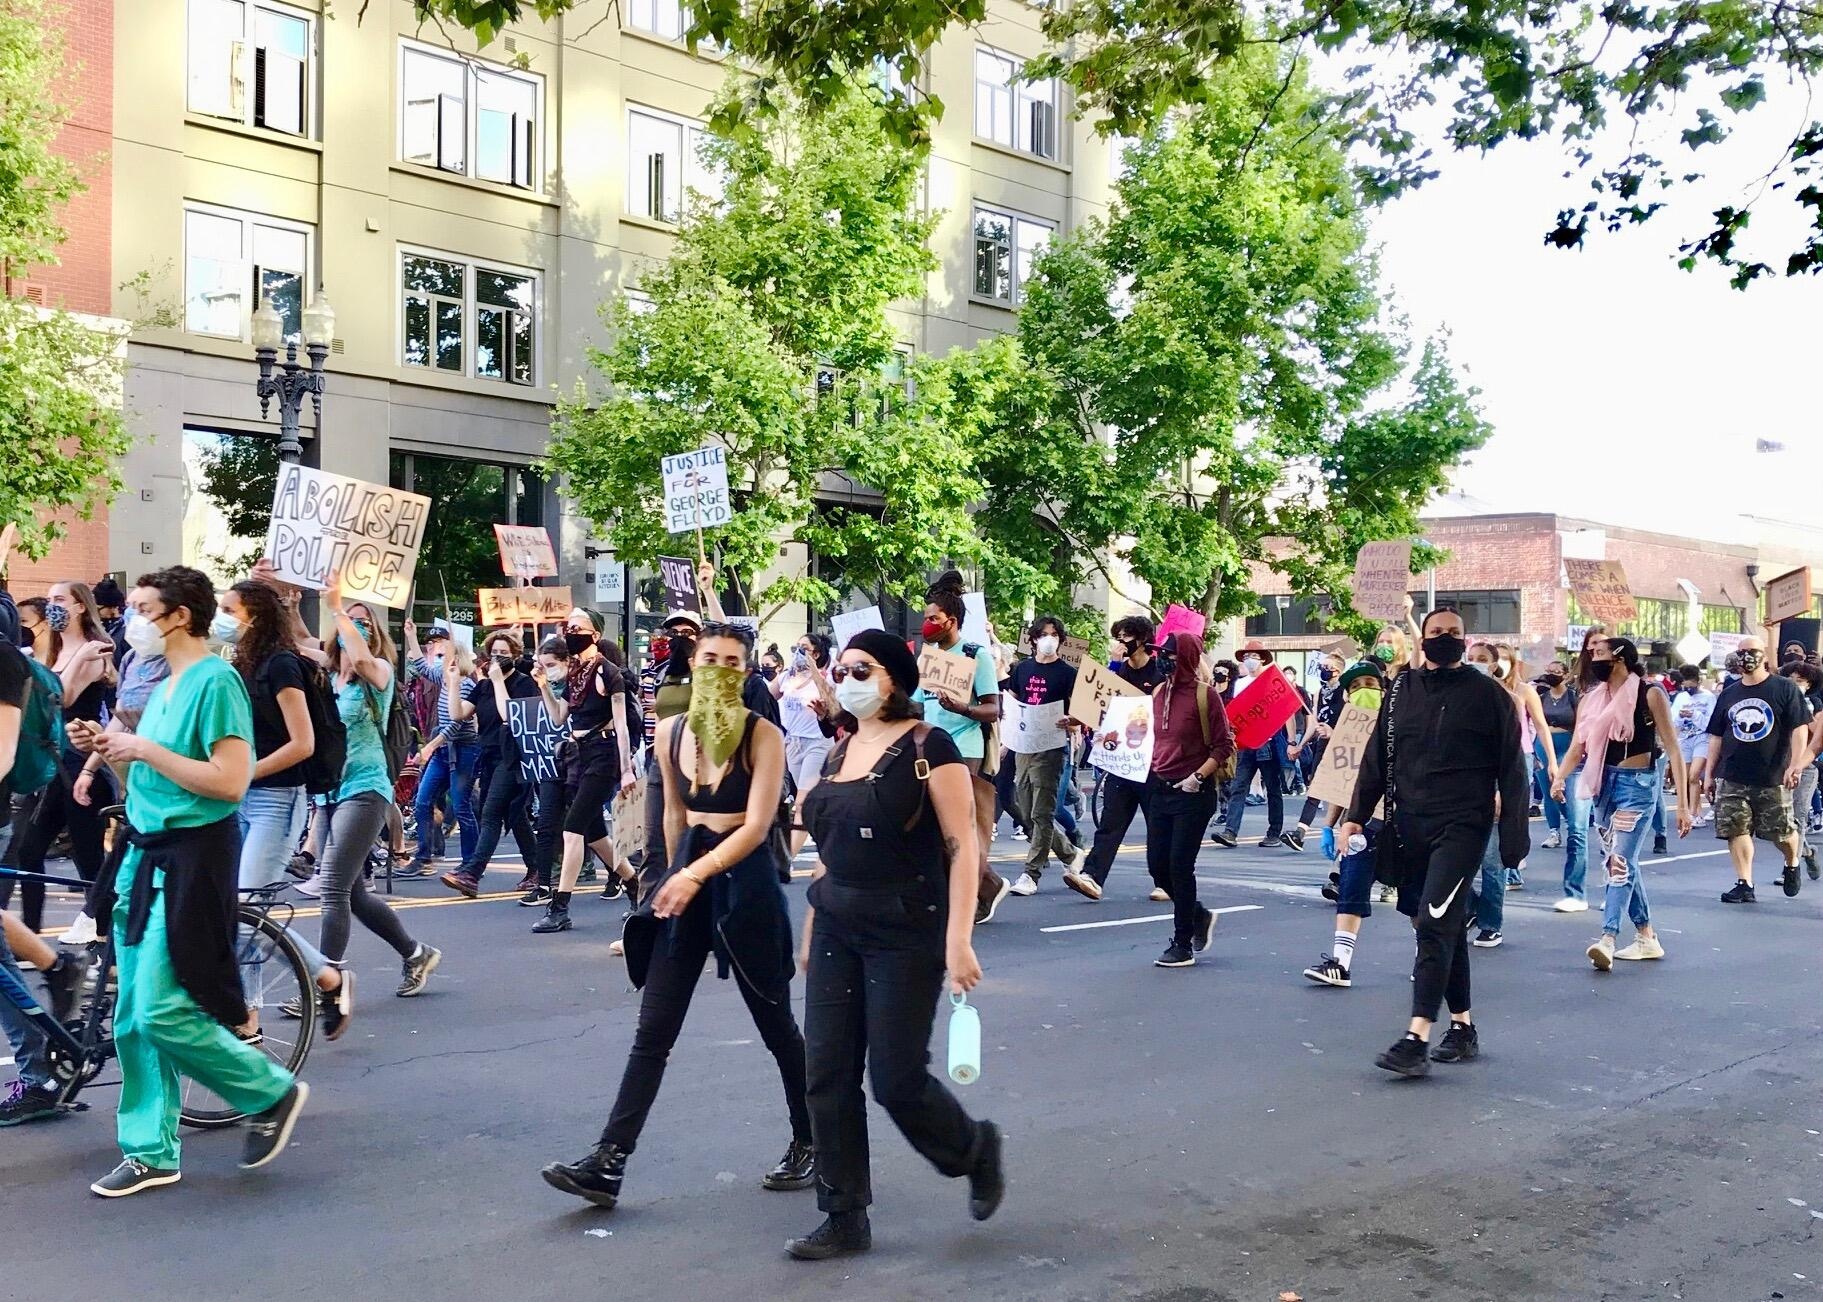 <p>More than 18,000 protesters peacefully marched through Oakland on Monday demanding justice for George Floyd.</p>